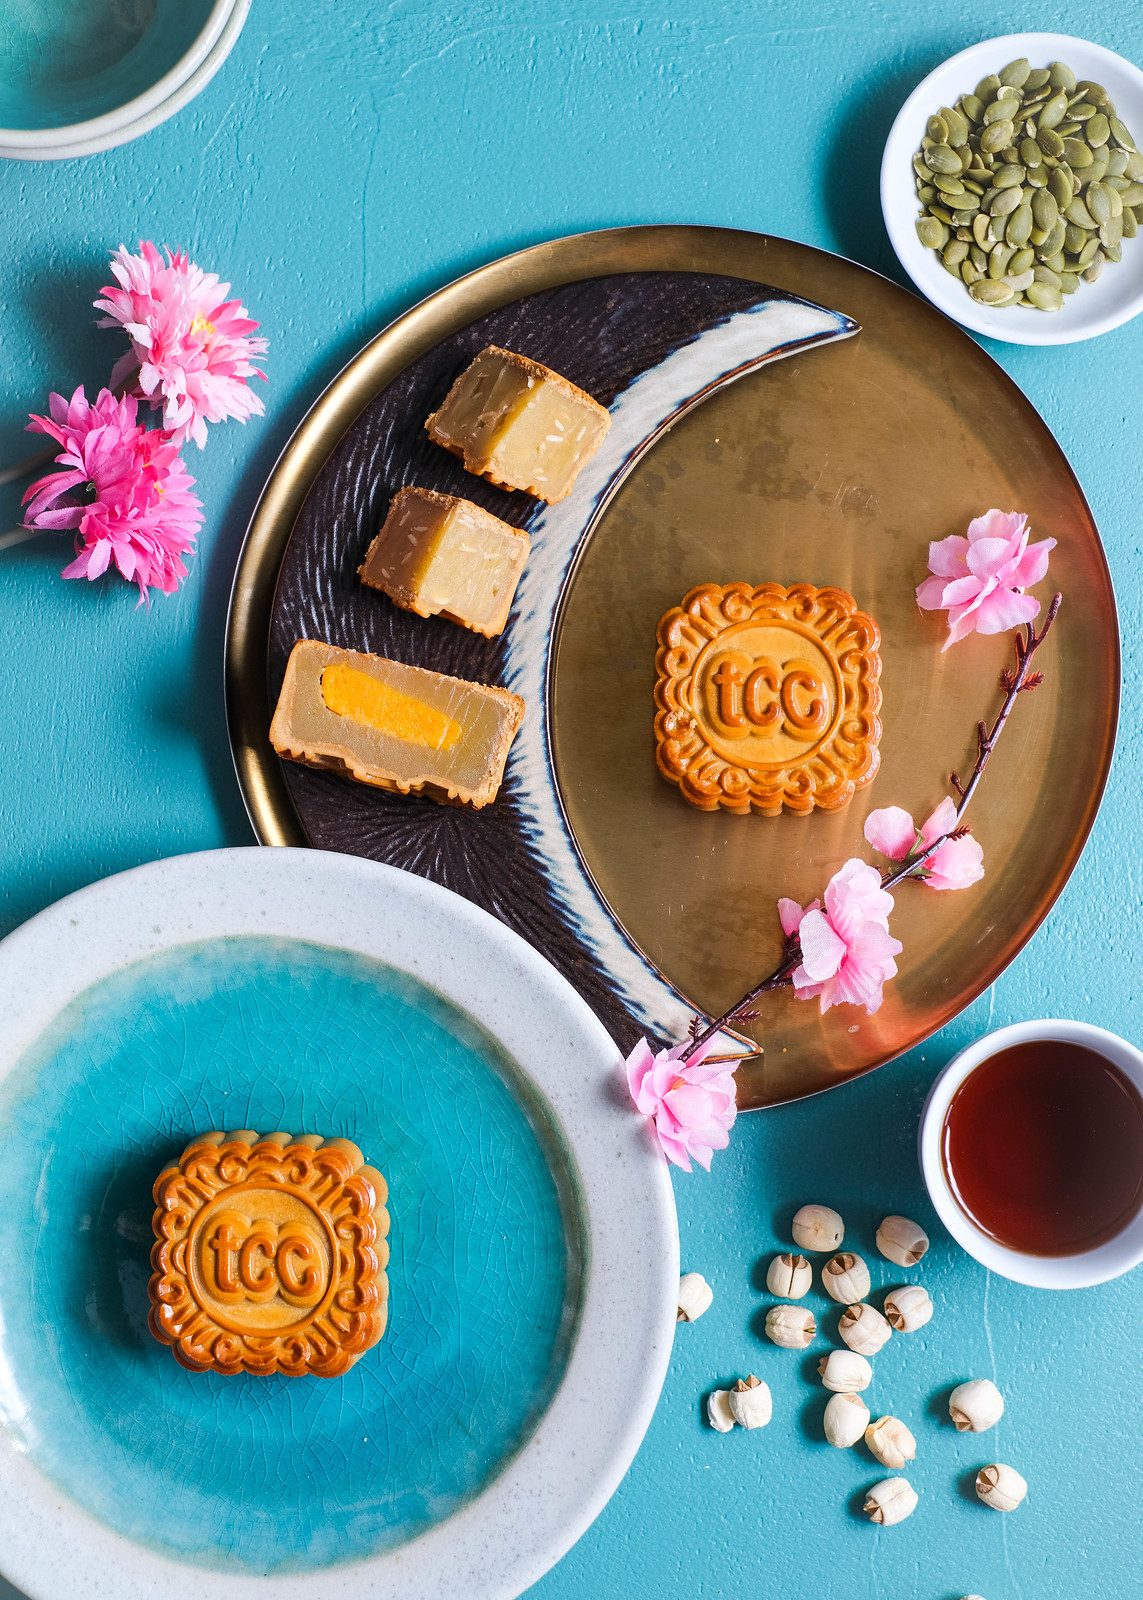 tcc Traditional Mooncakes